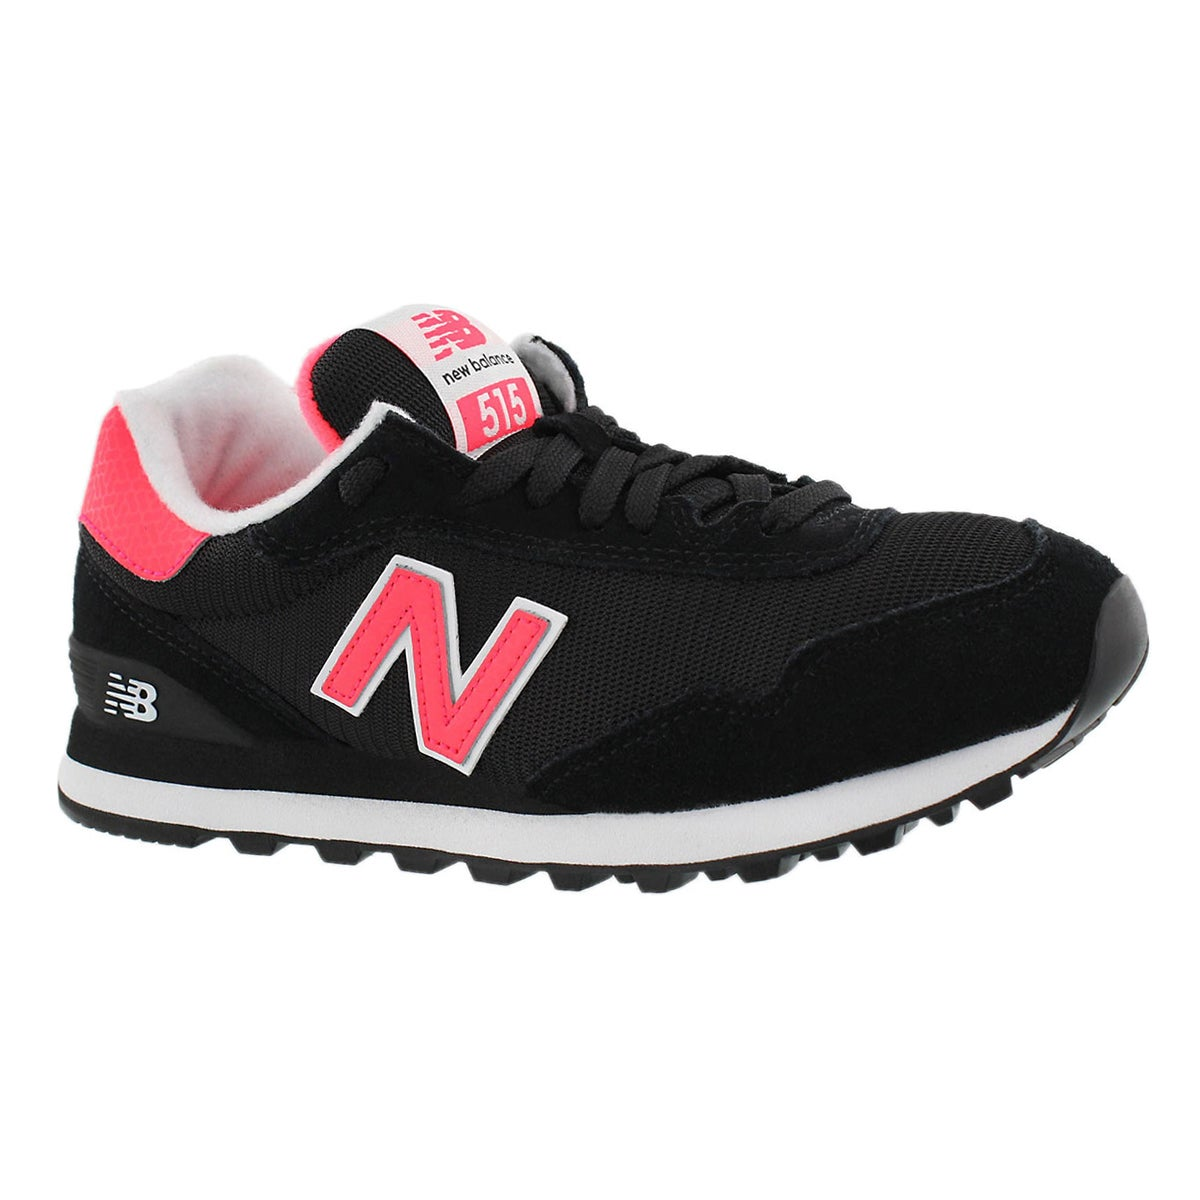 Women's 515 black/cherry lace up sneakers